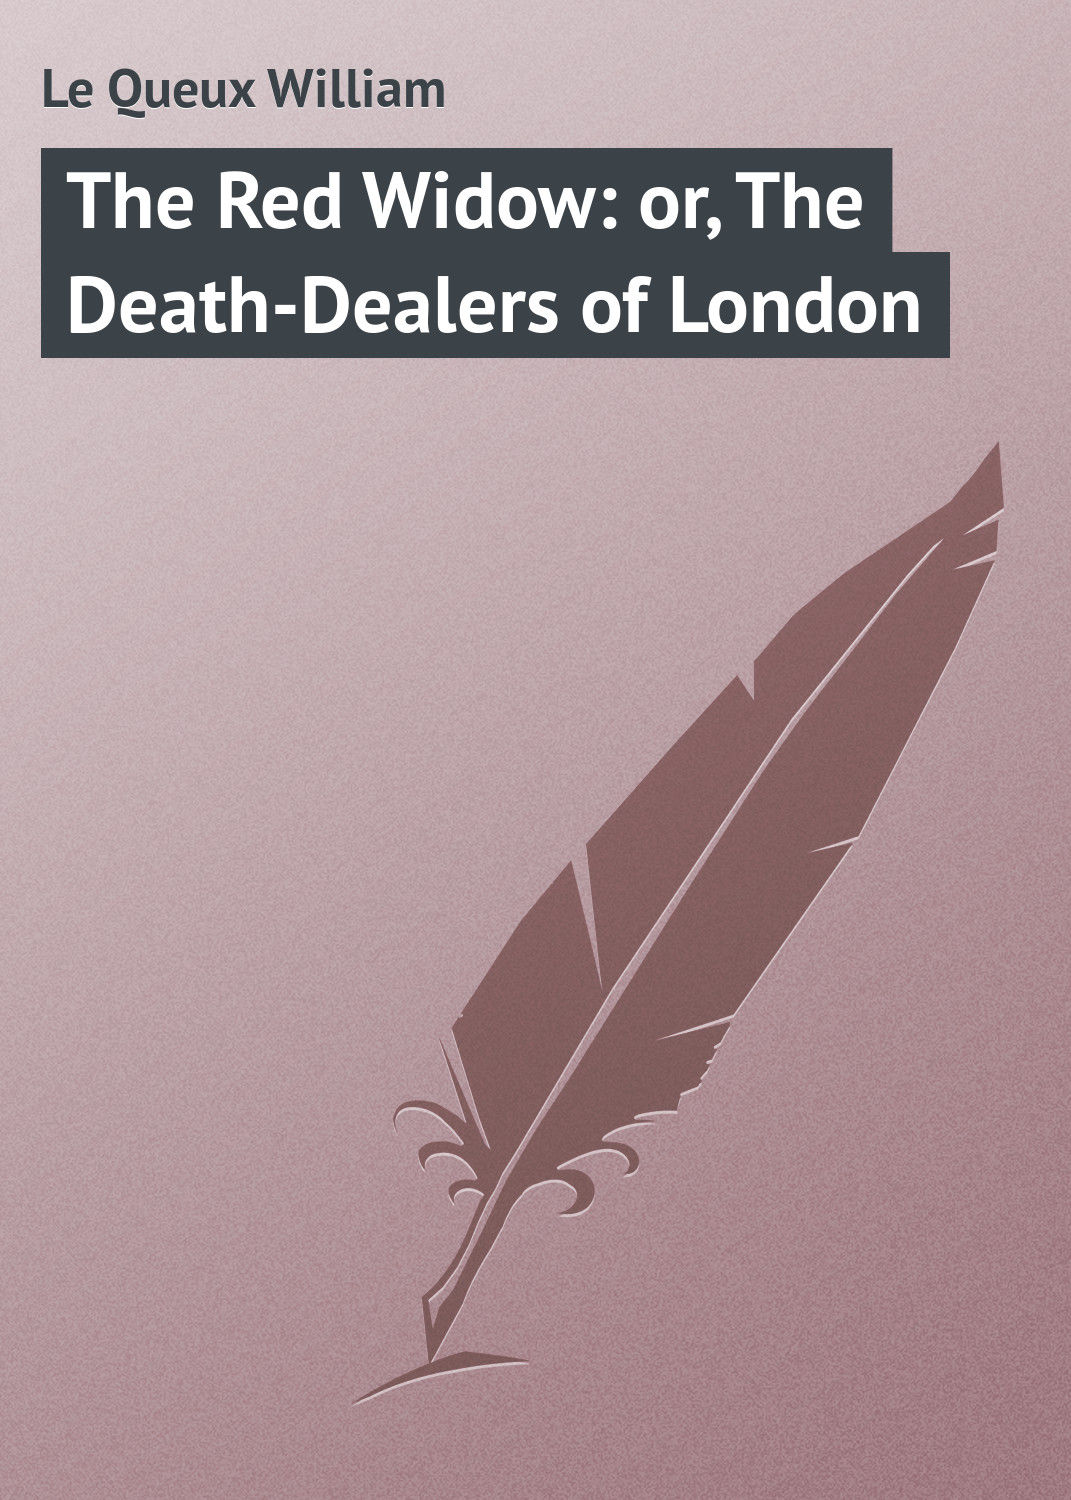 Le Queux William The Red Widow: or, The Death-Dealers of London a new lease of death